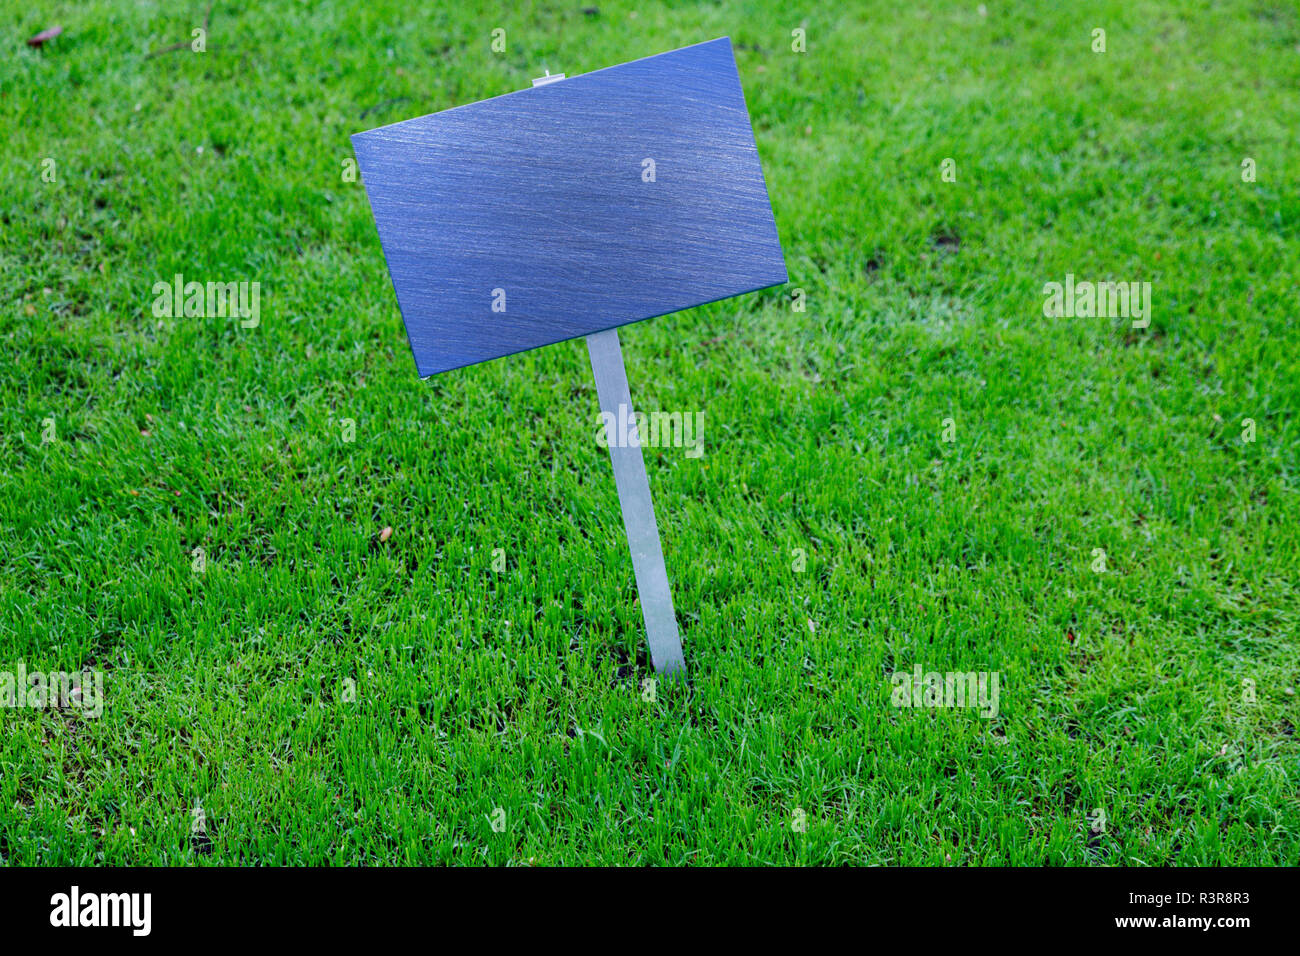 Empty sign on lawn. - Stock Image